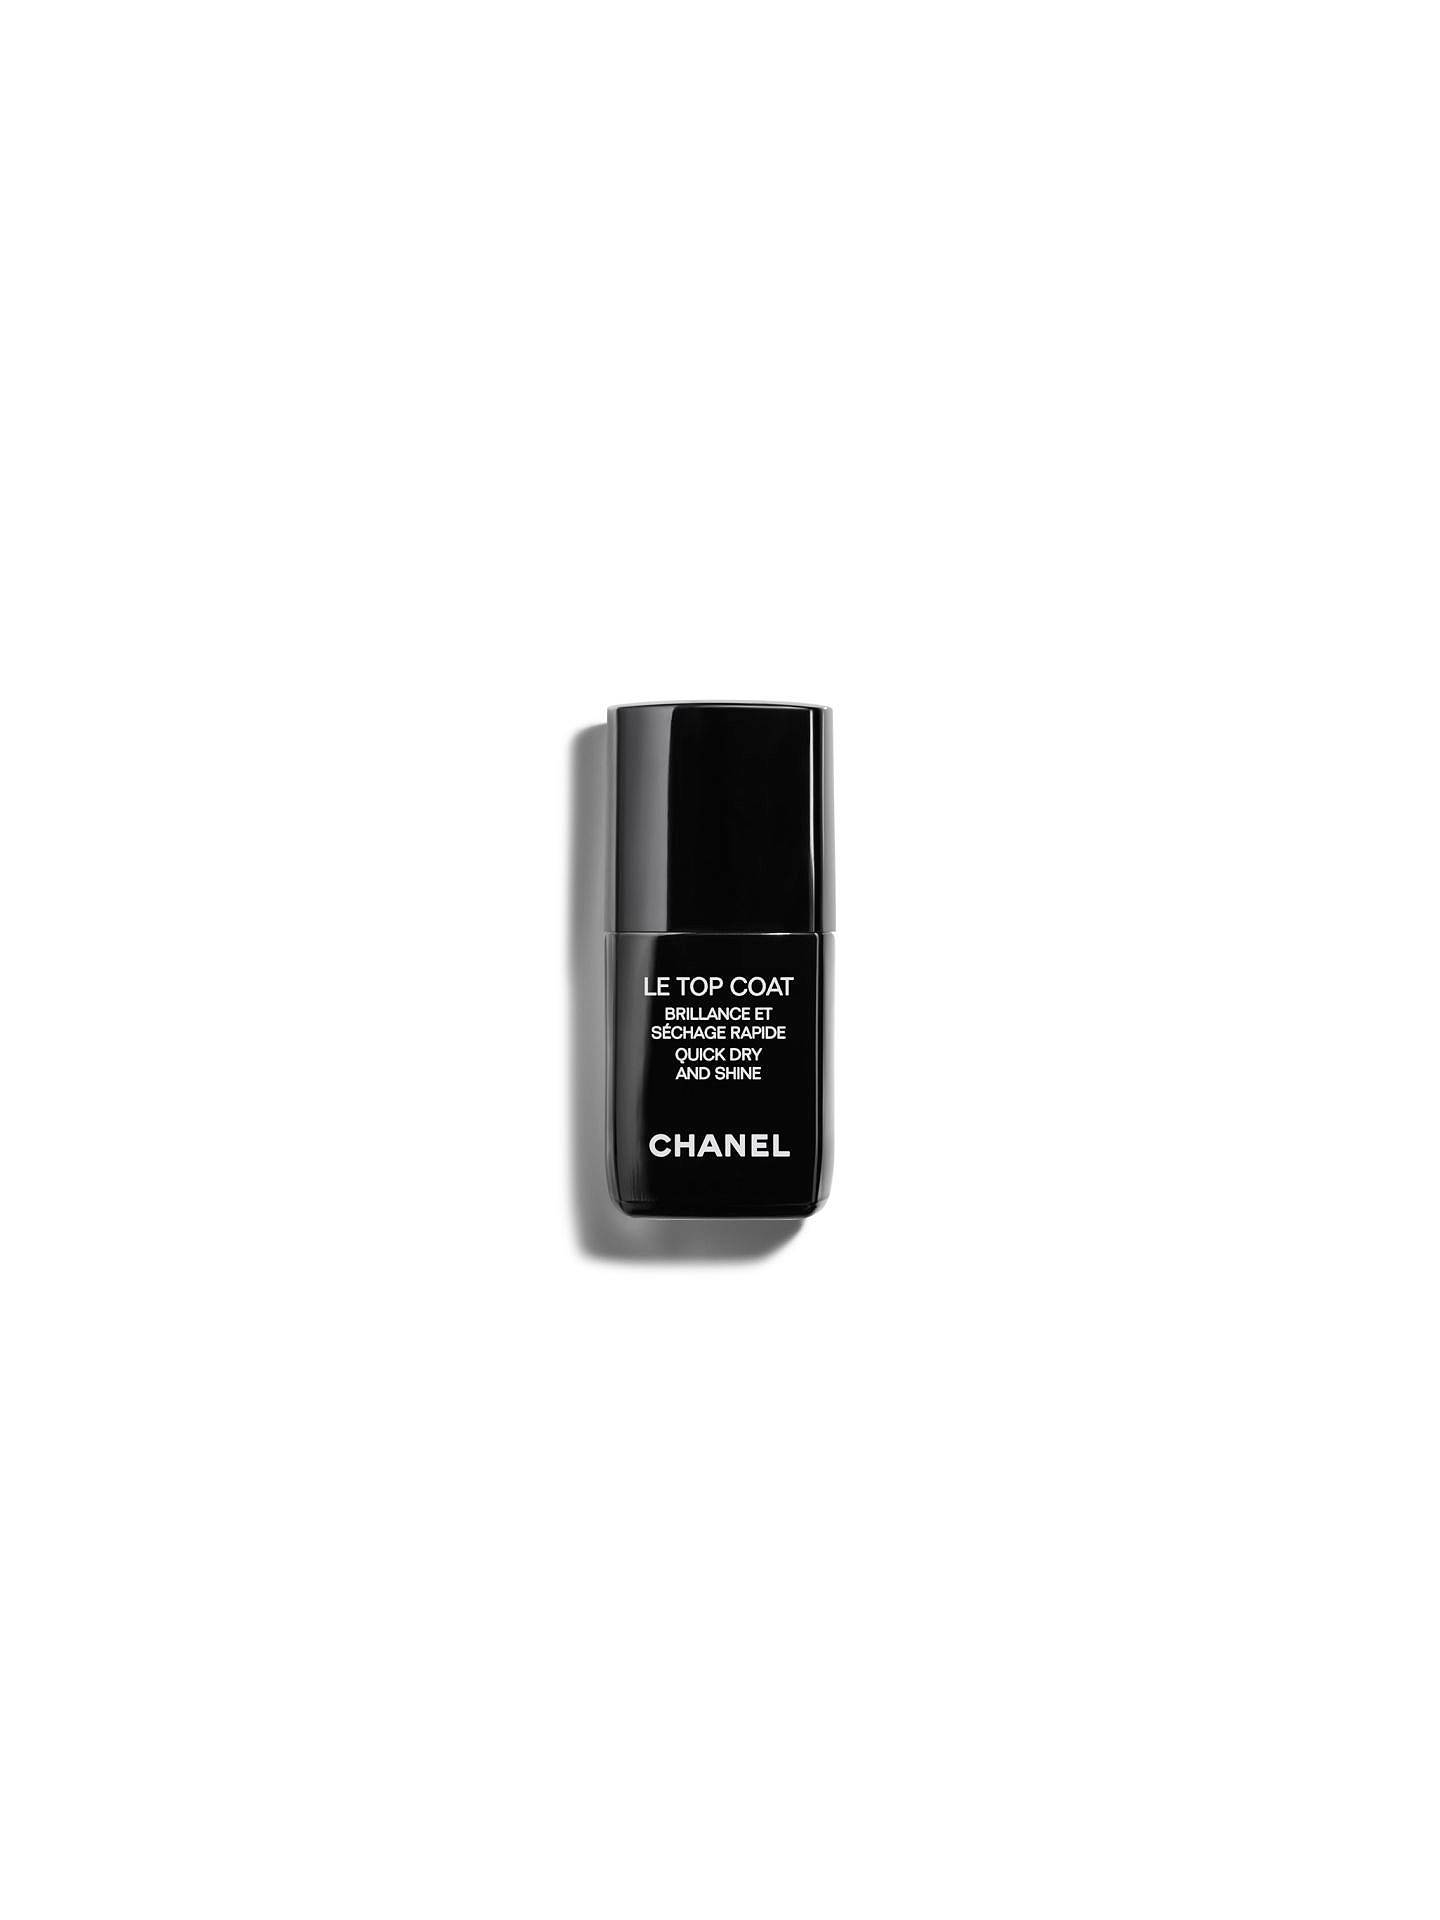 BuyCHANEL LE TOP COAT Quick Dry And Shine Online at johnlewis.com